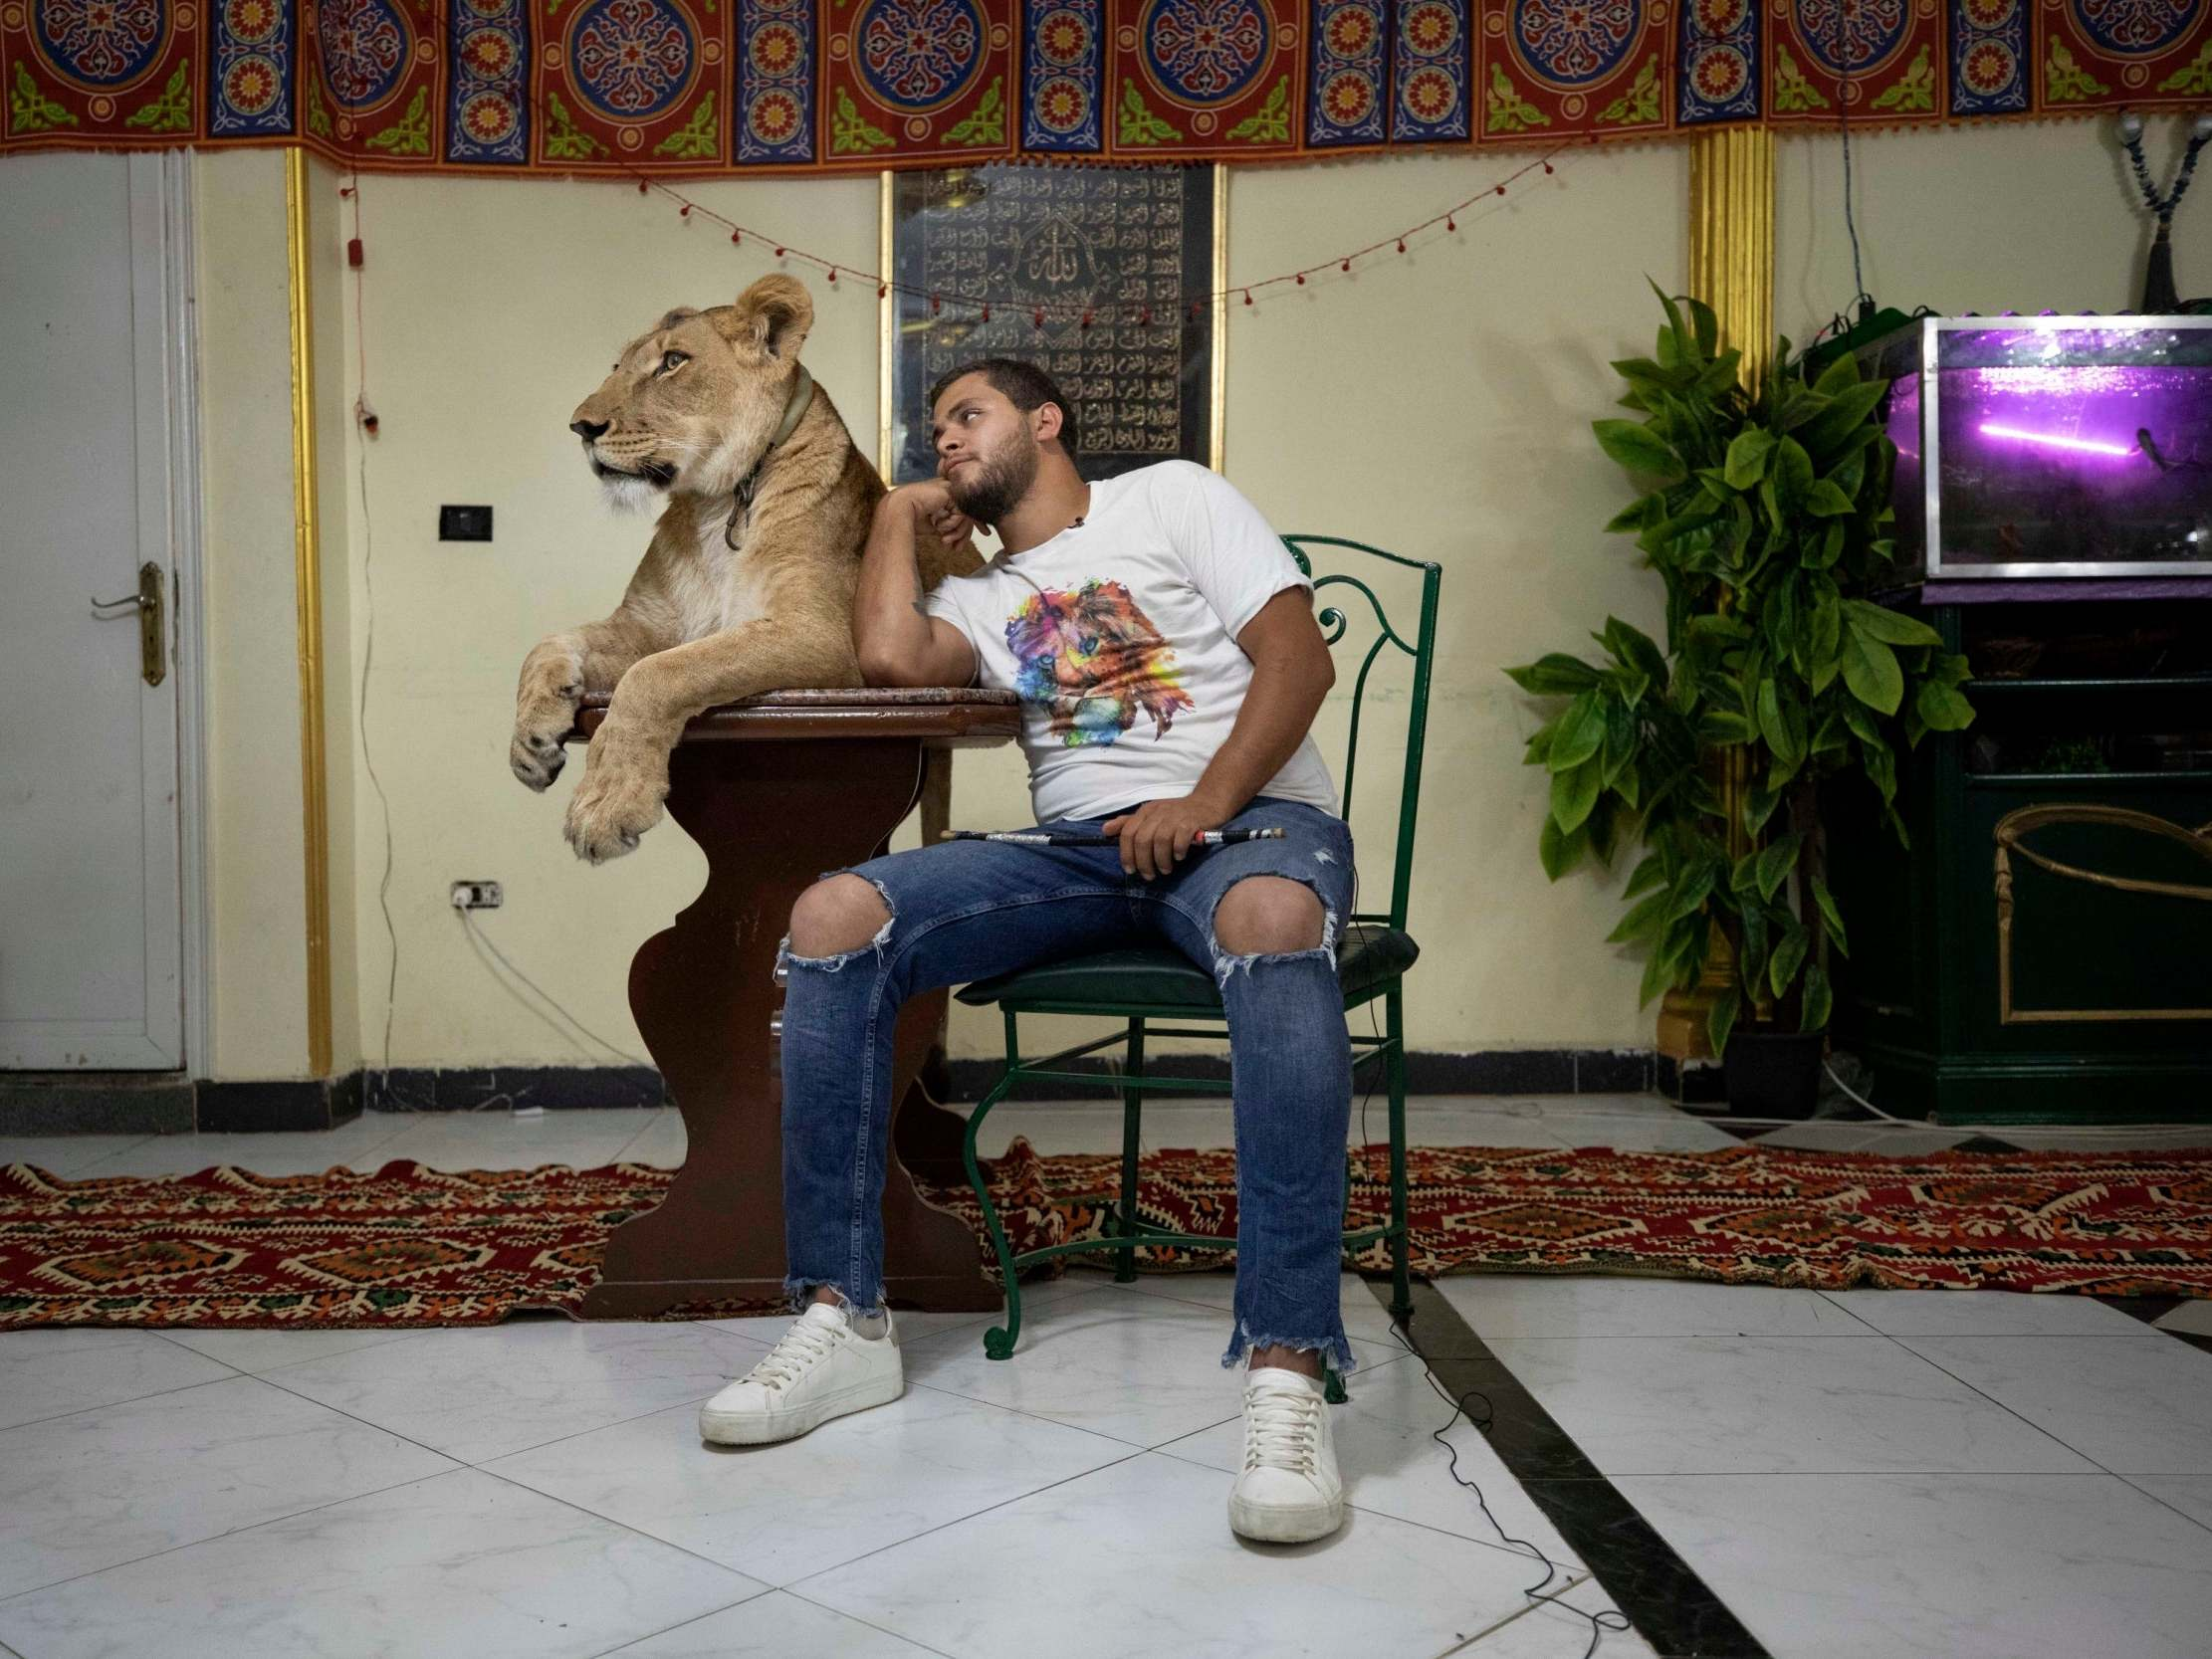 'Irresponsible and foolish': Lion trainer criticised for performing act in flat during Egypt lockdown photo